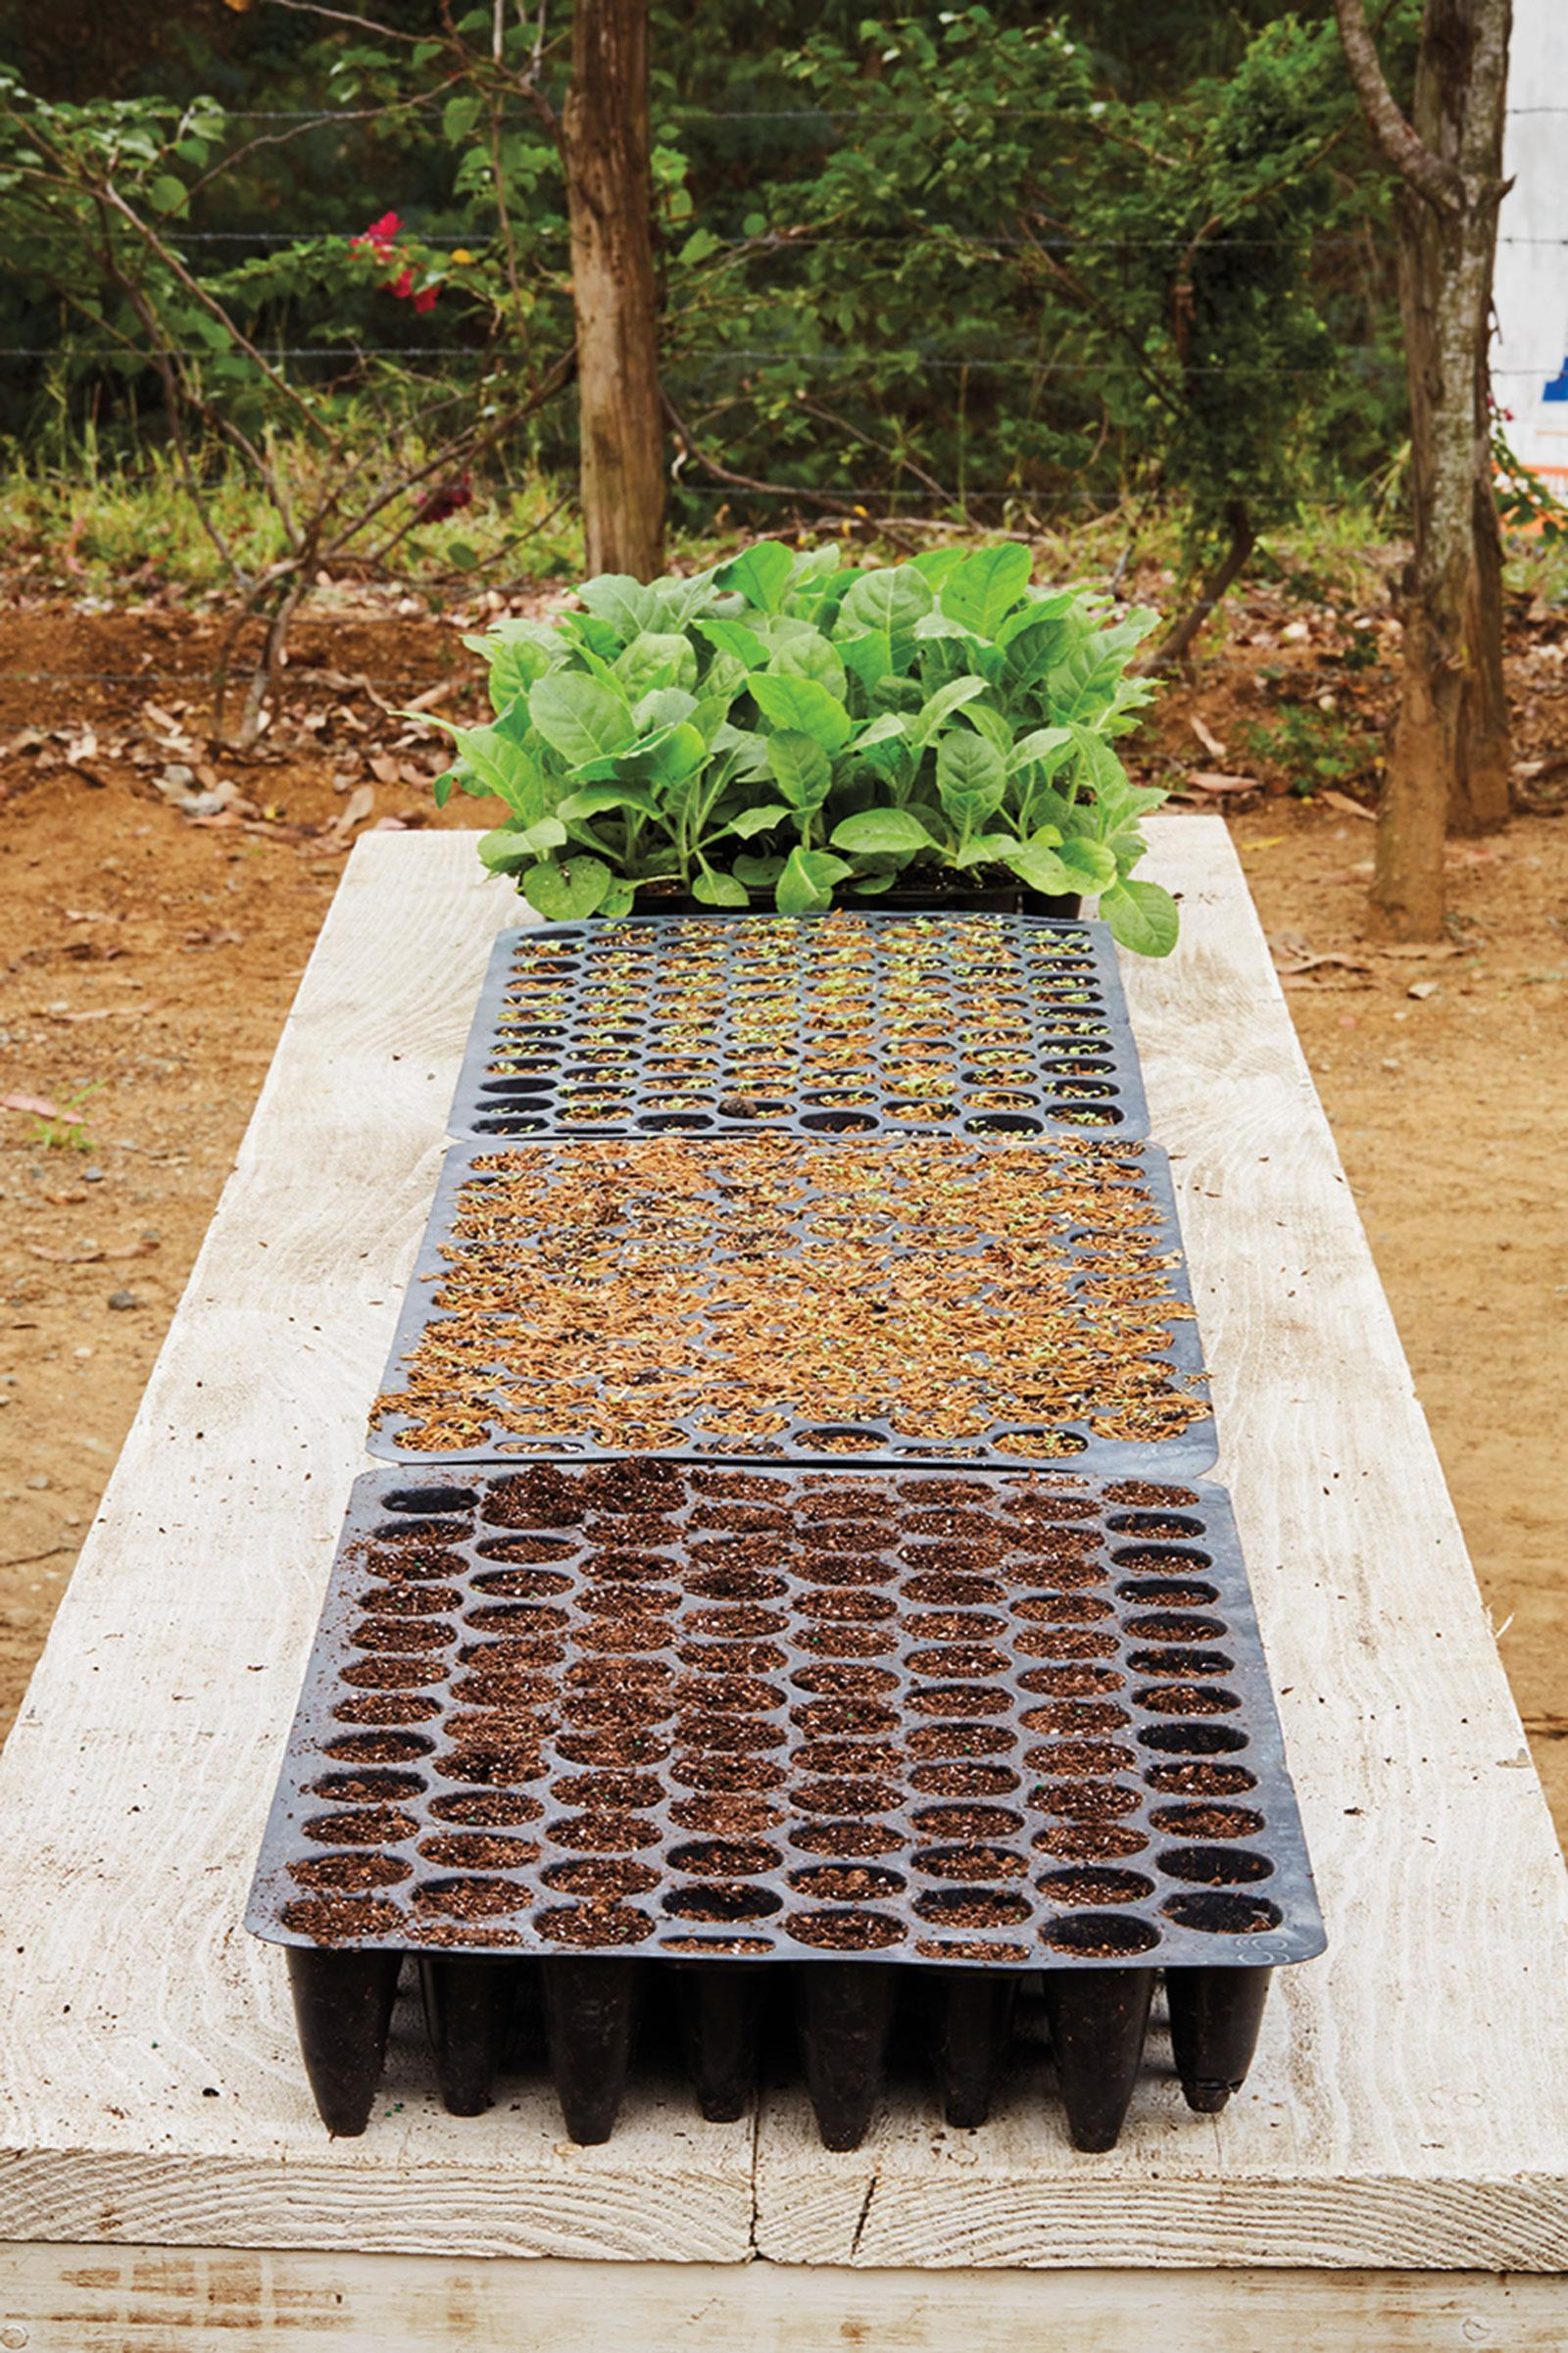 A germination station of seed trays in Mao, the Dominican Republic at General's farm. Seedlings must grow into plants beofre they go into the field.